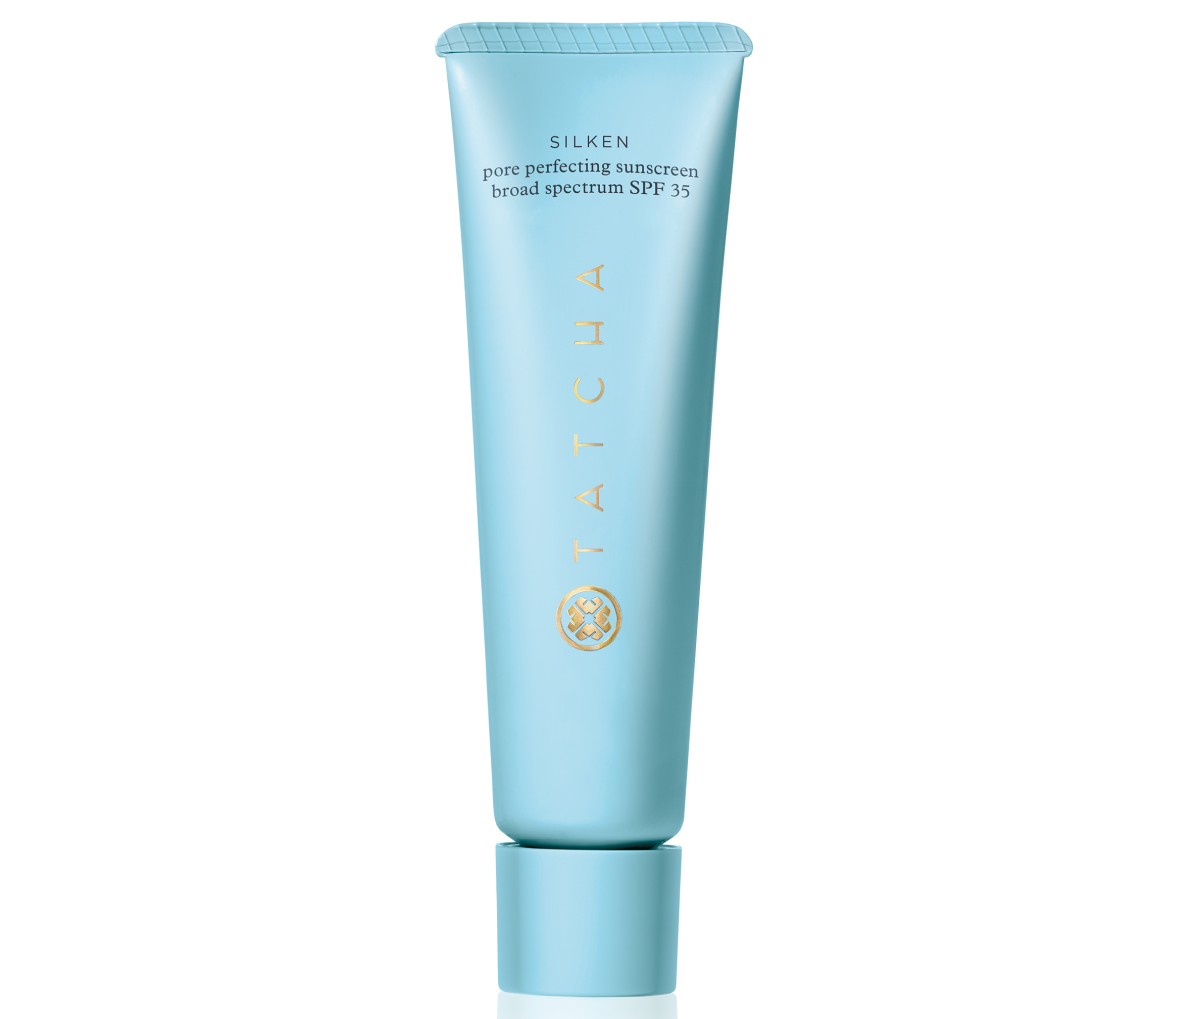 Tatcha Silken Pore Perfecting Sunscreen Broad Spectrum SPF 35, $65, available at Sephora.com.